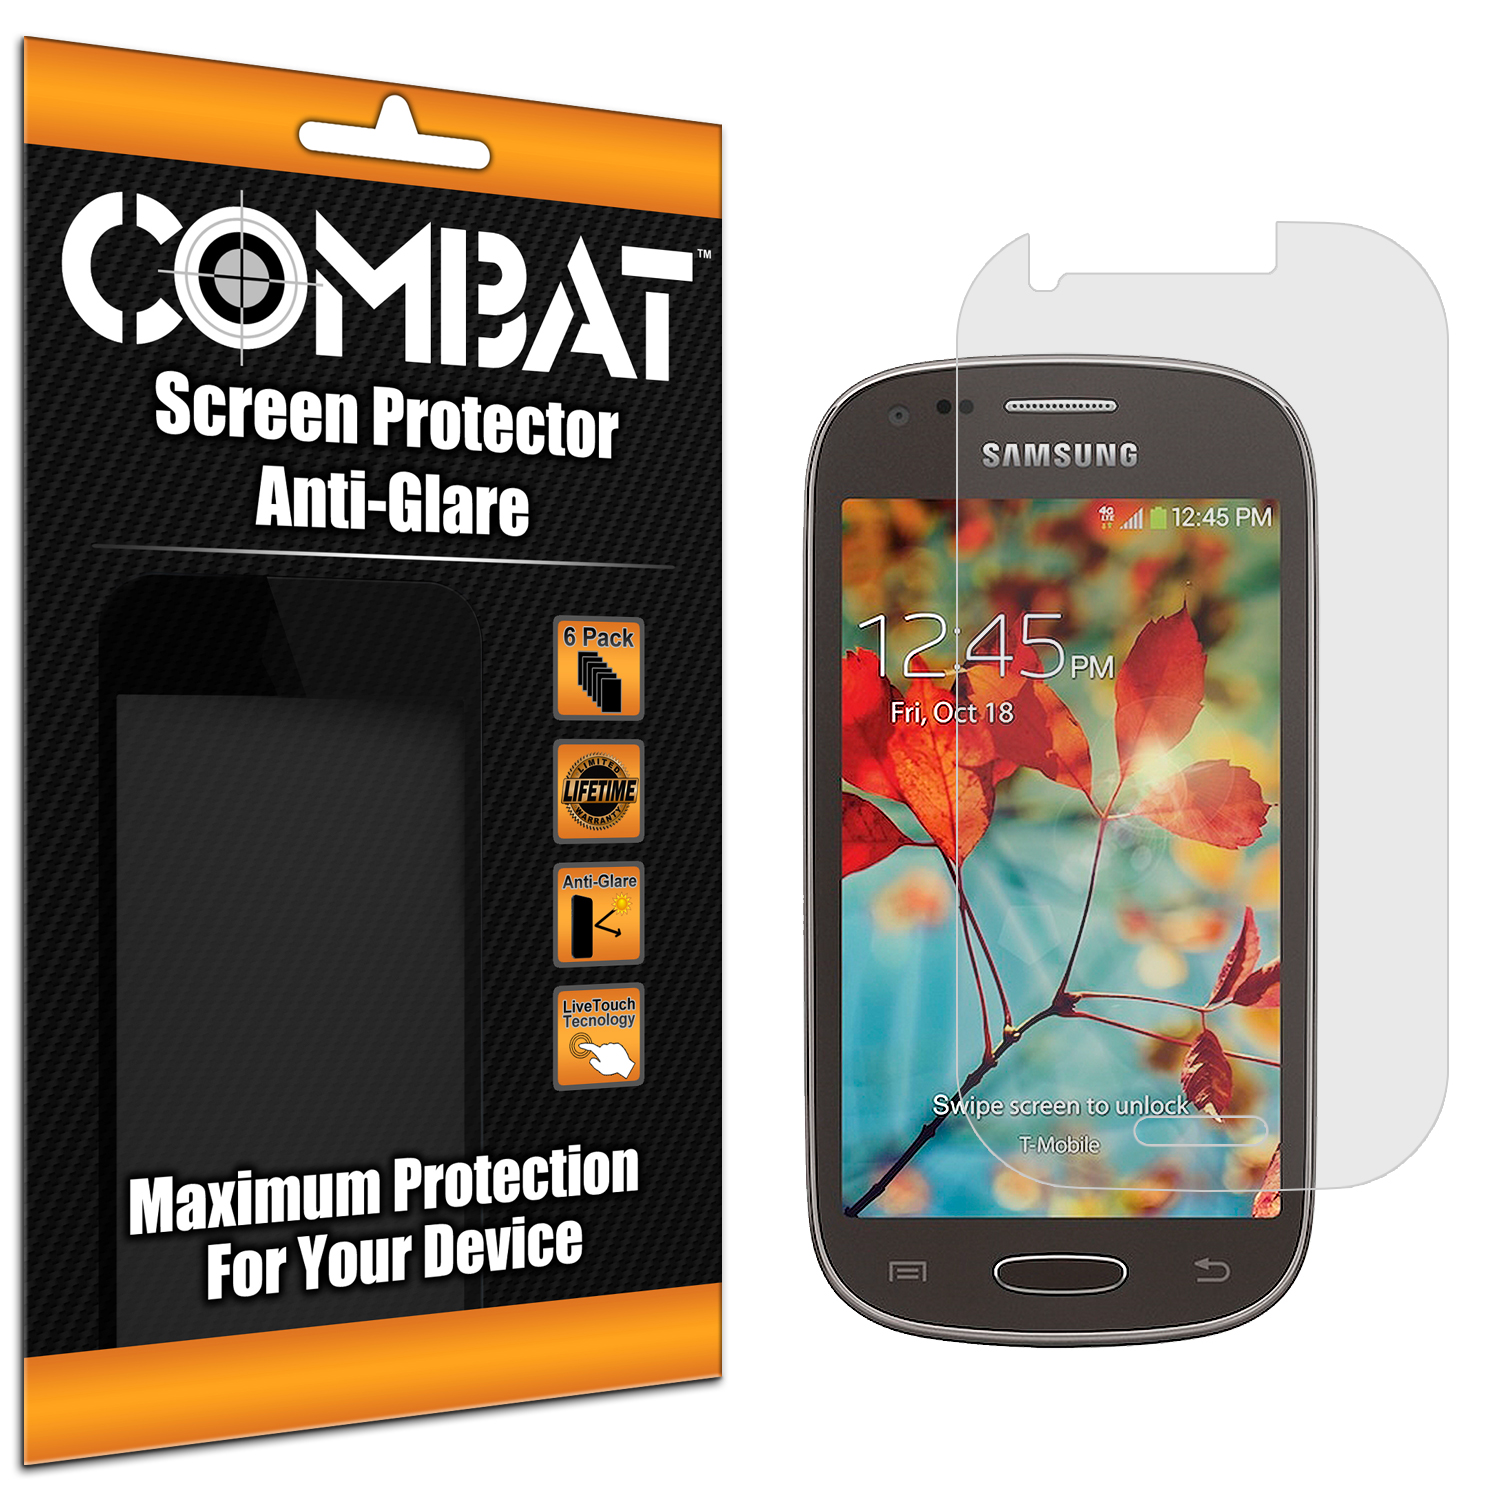 Samsung Galaxy Light T399 Combat 6 Pack Anti-Glare Matte Screen Protector